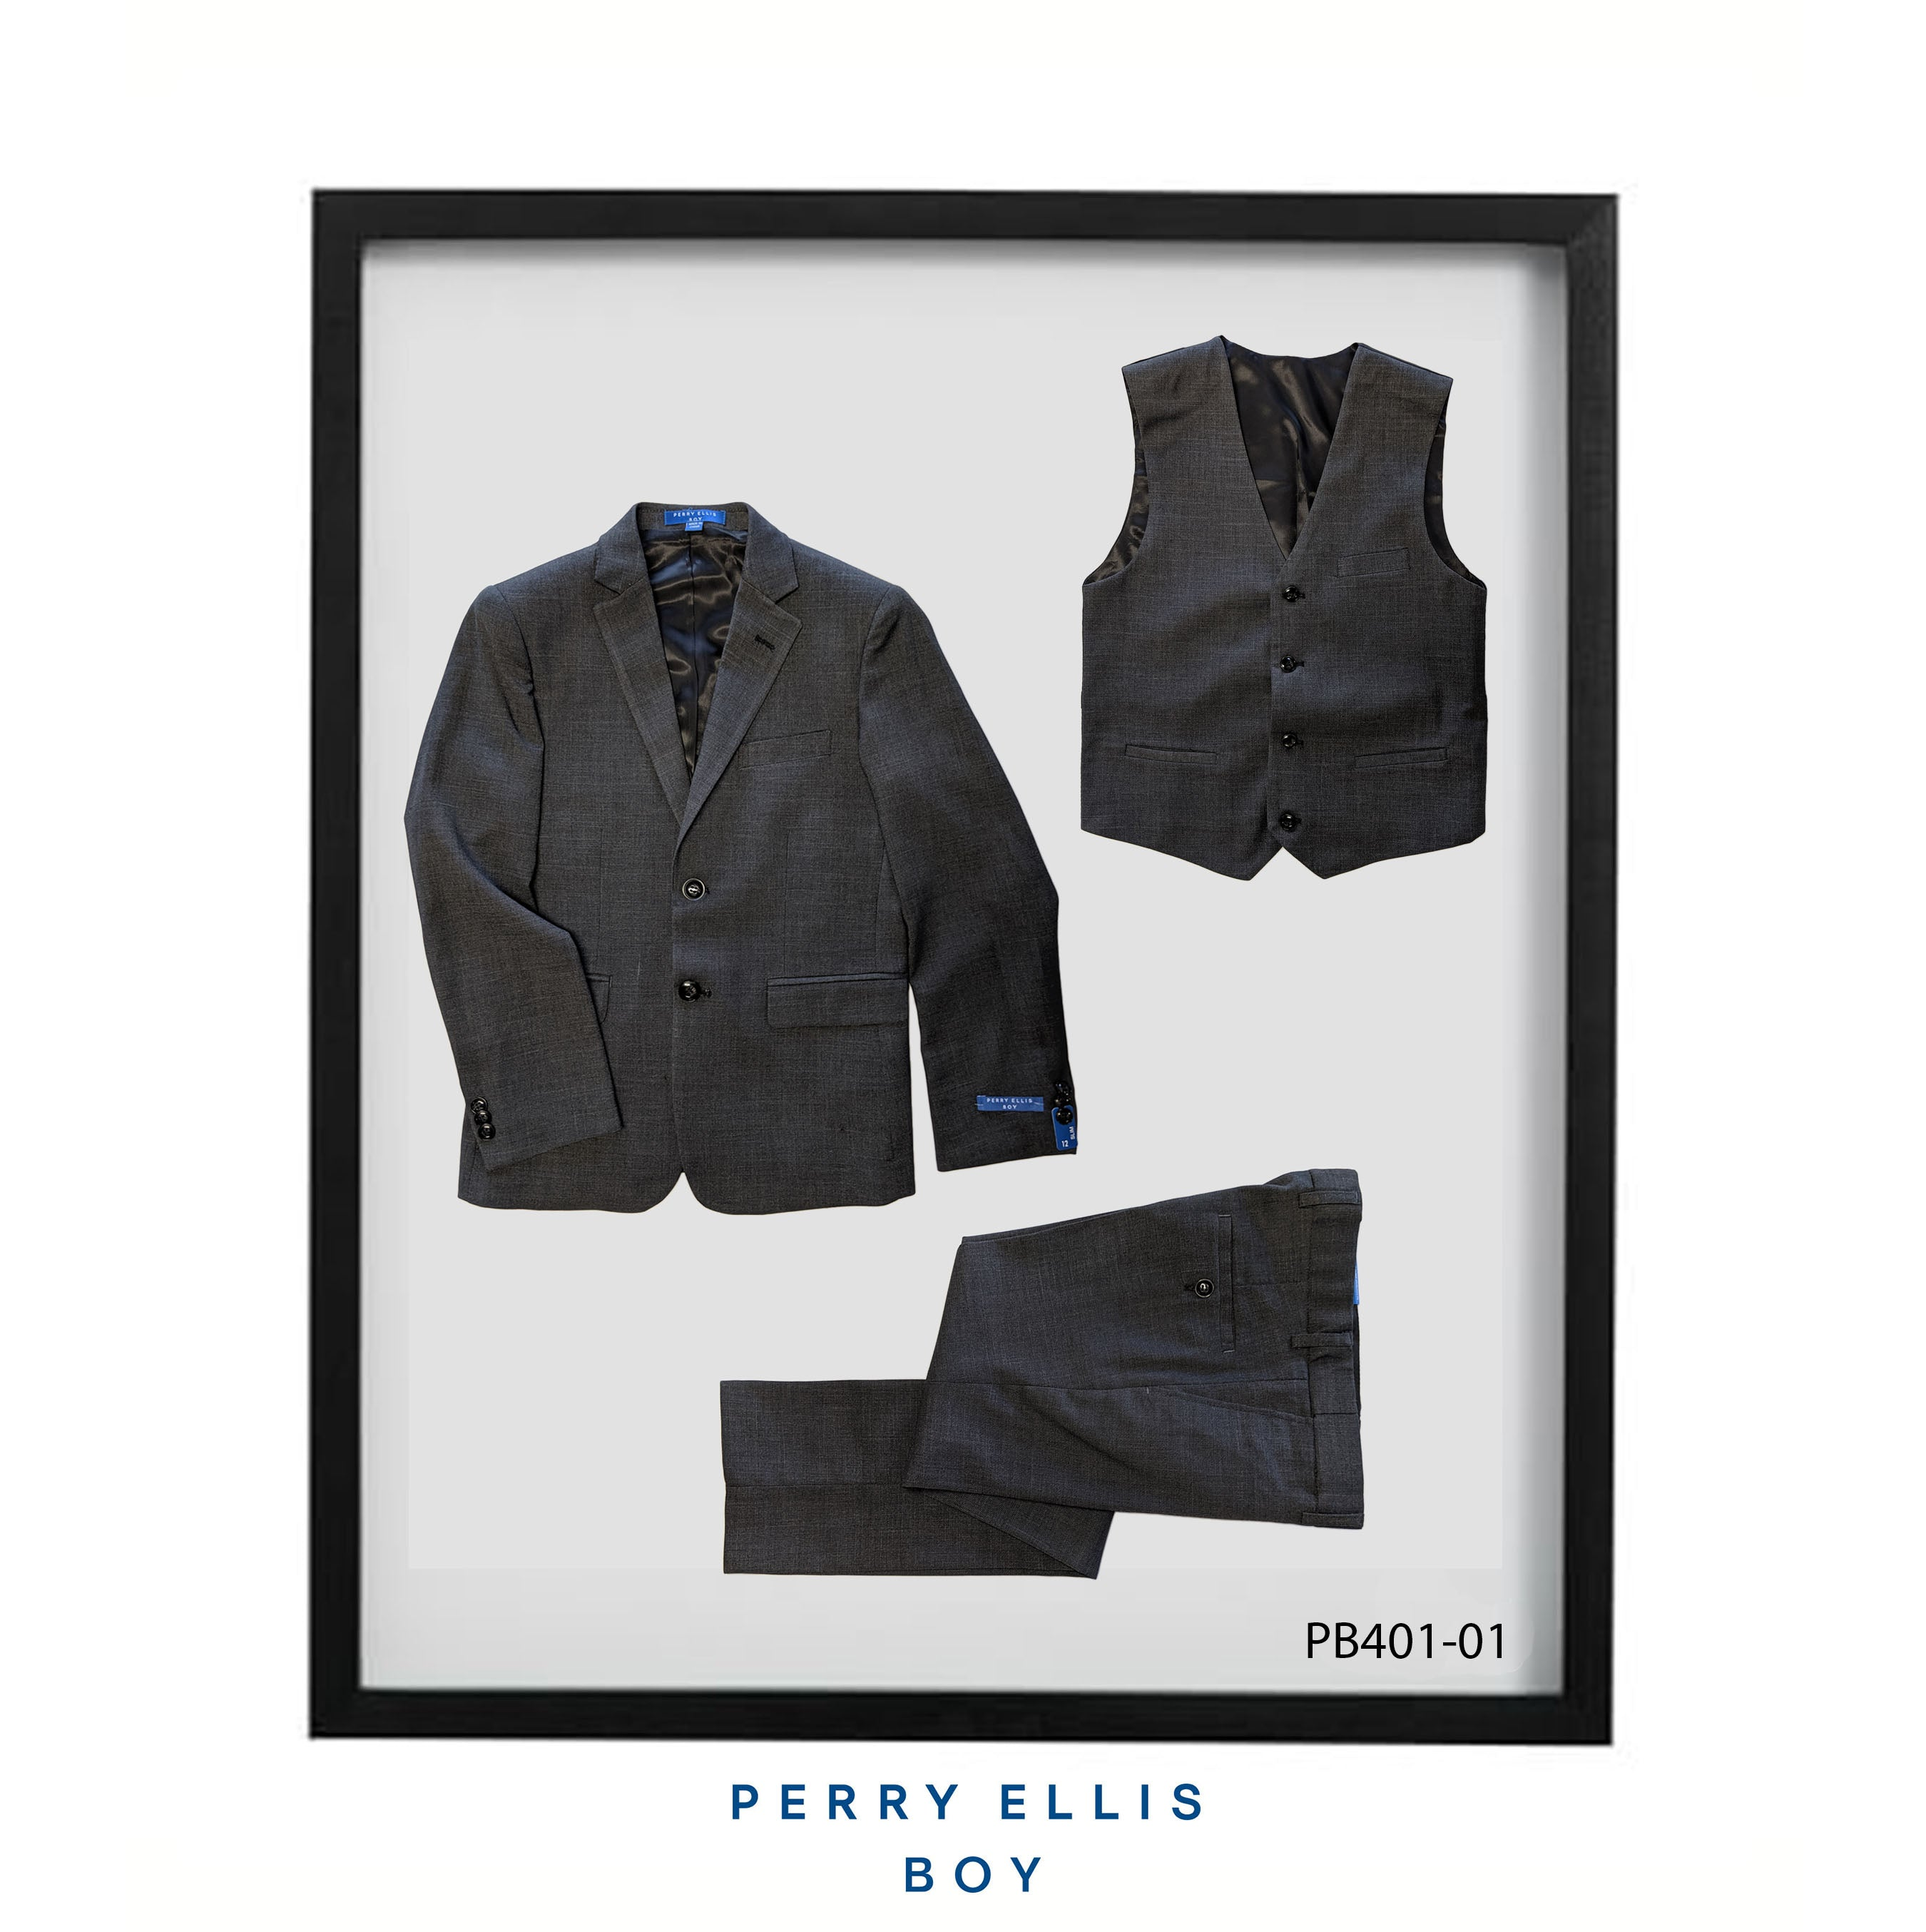 Dark Grey 3 Piece Perry Ellis Textured Suits For Boys PB401-01